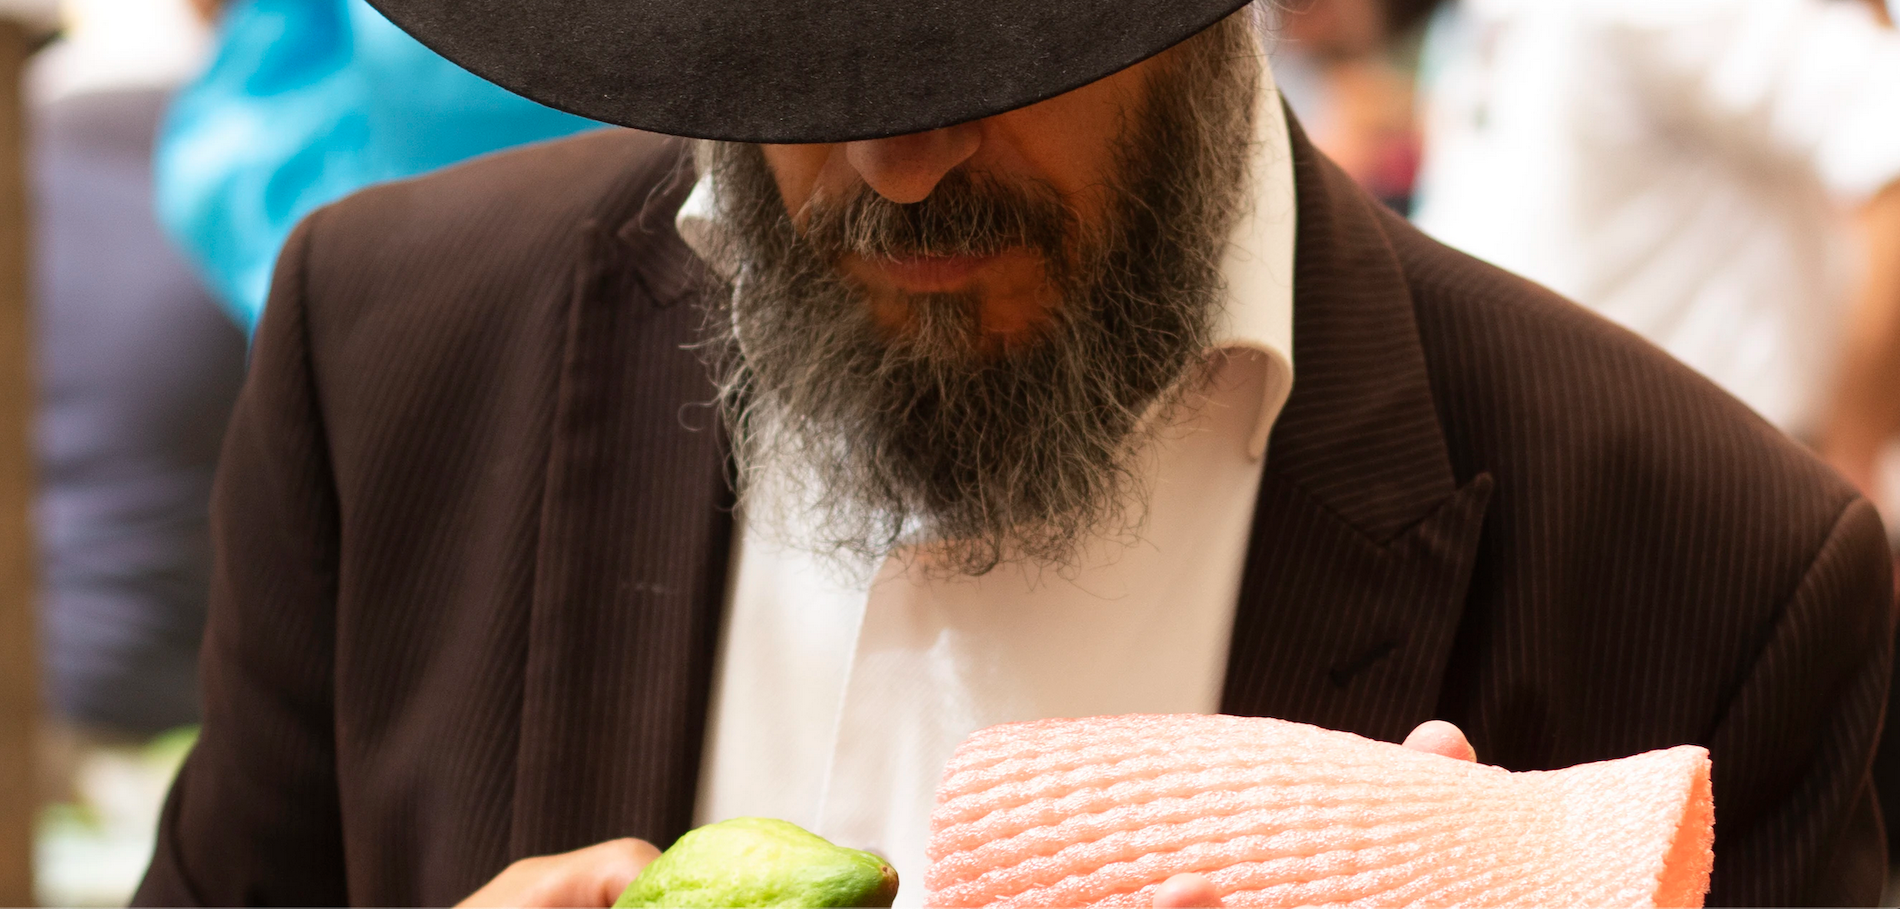 Safety Tips For a Covid-Kosher Sukkos & Other Orthodox Jews in the News